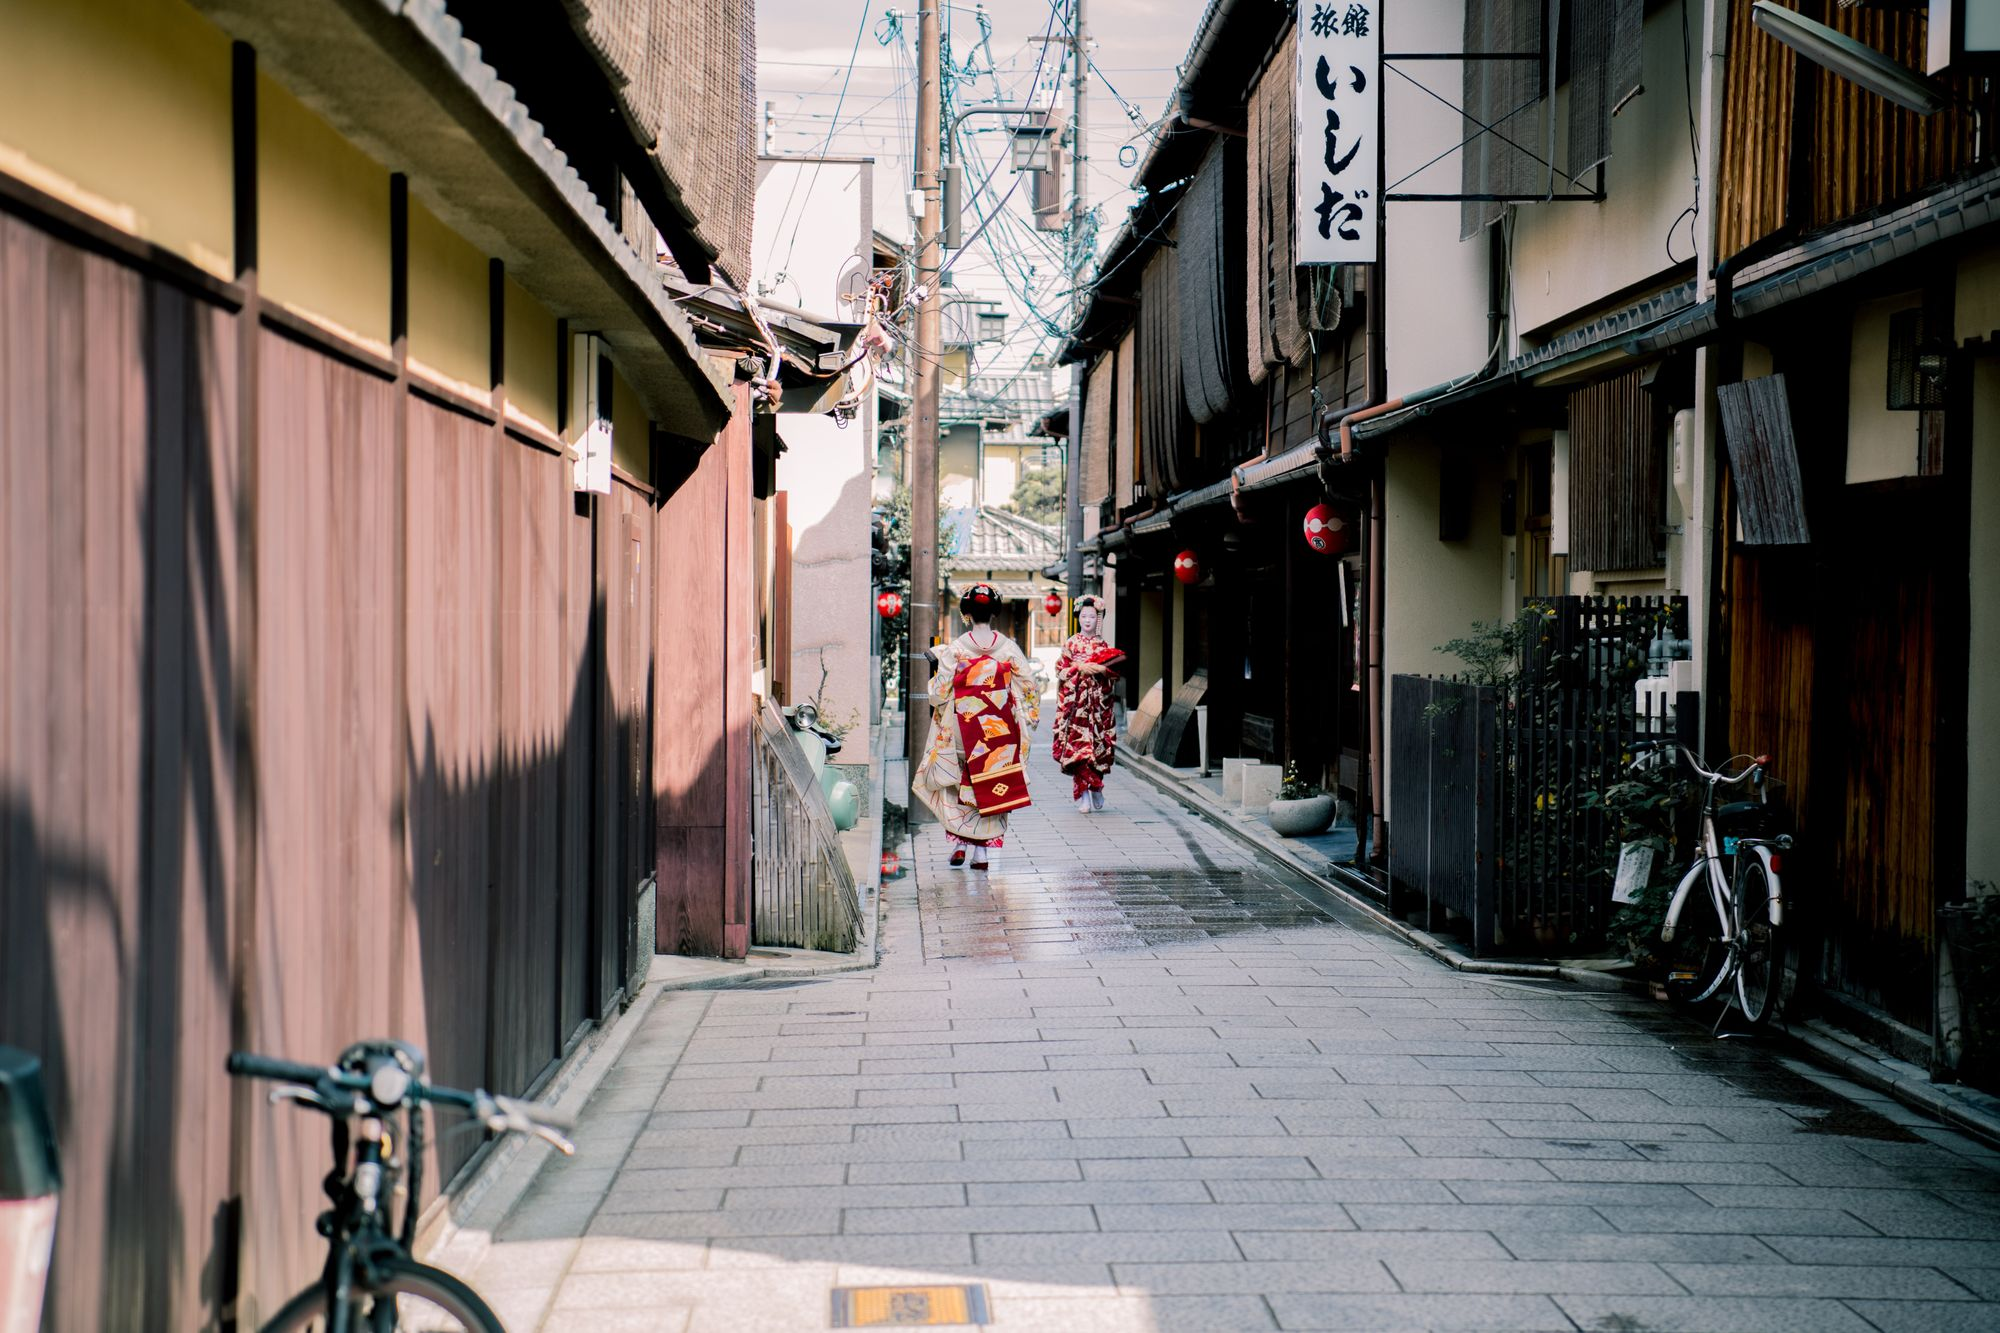 Where To Stay In Kyoto: Best Neighborhoods & Hotels